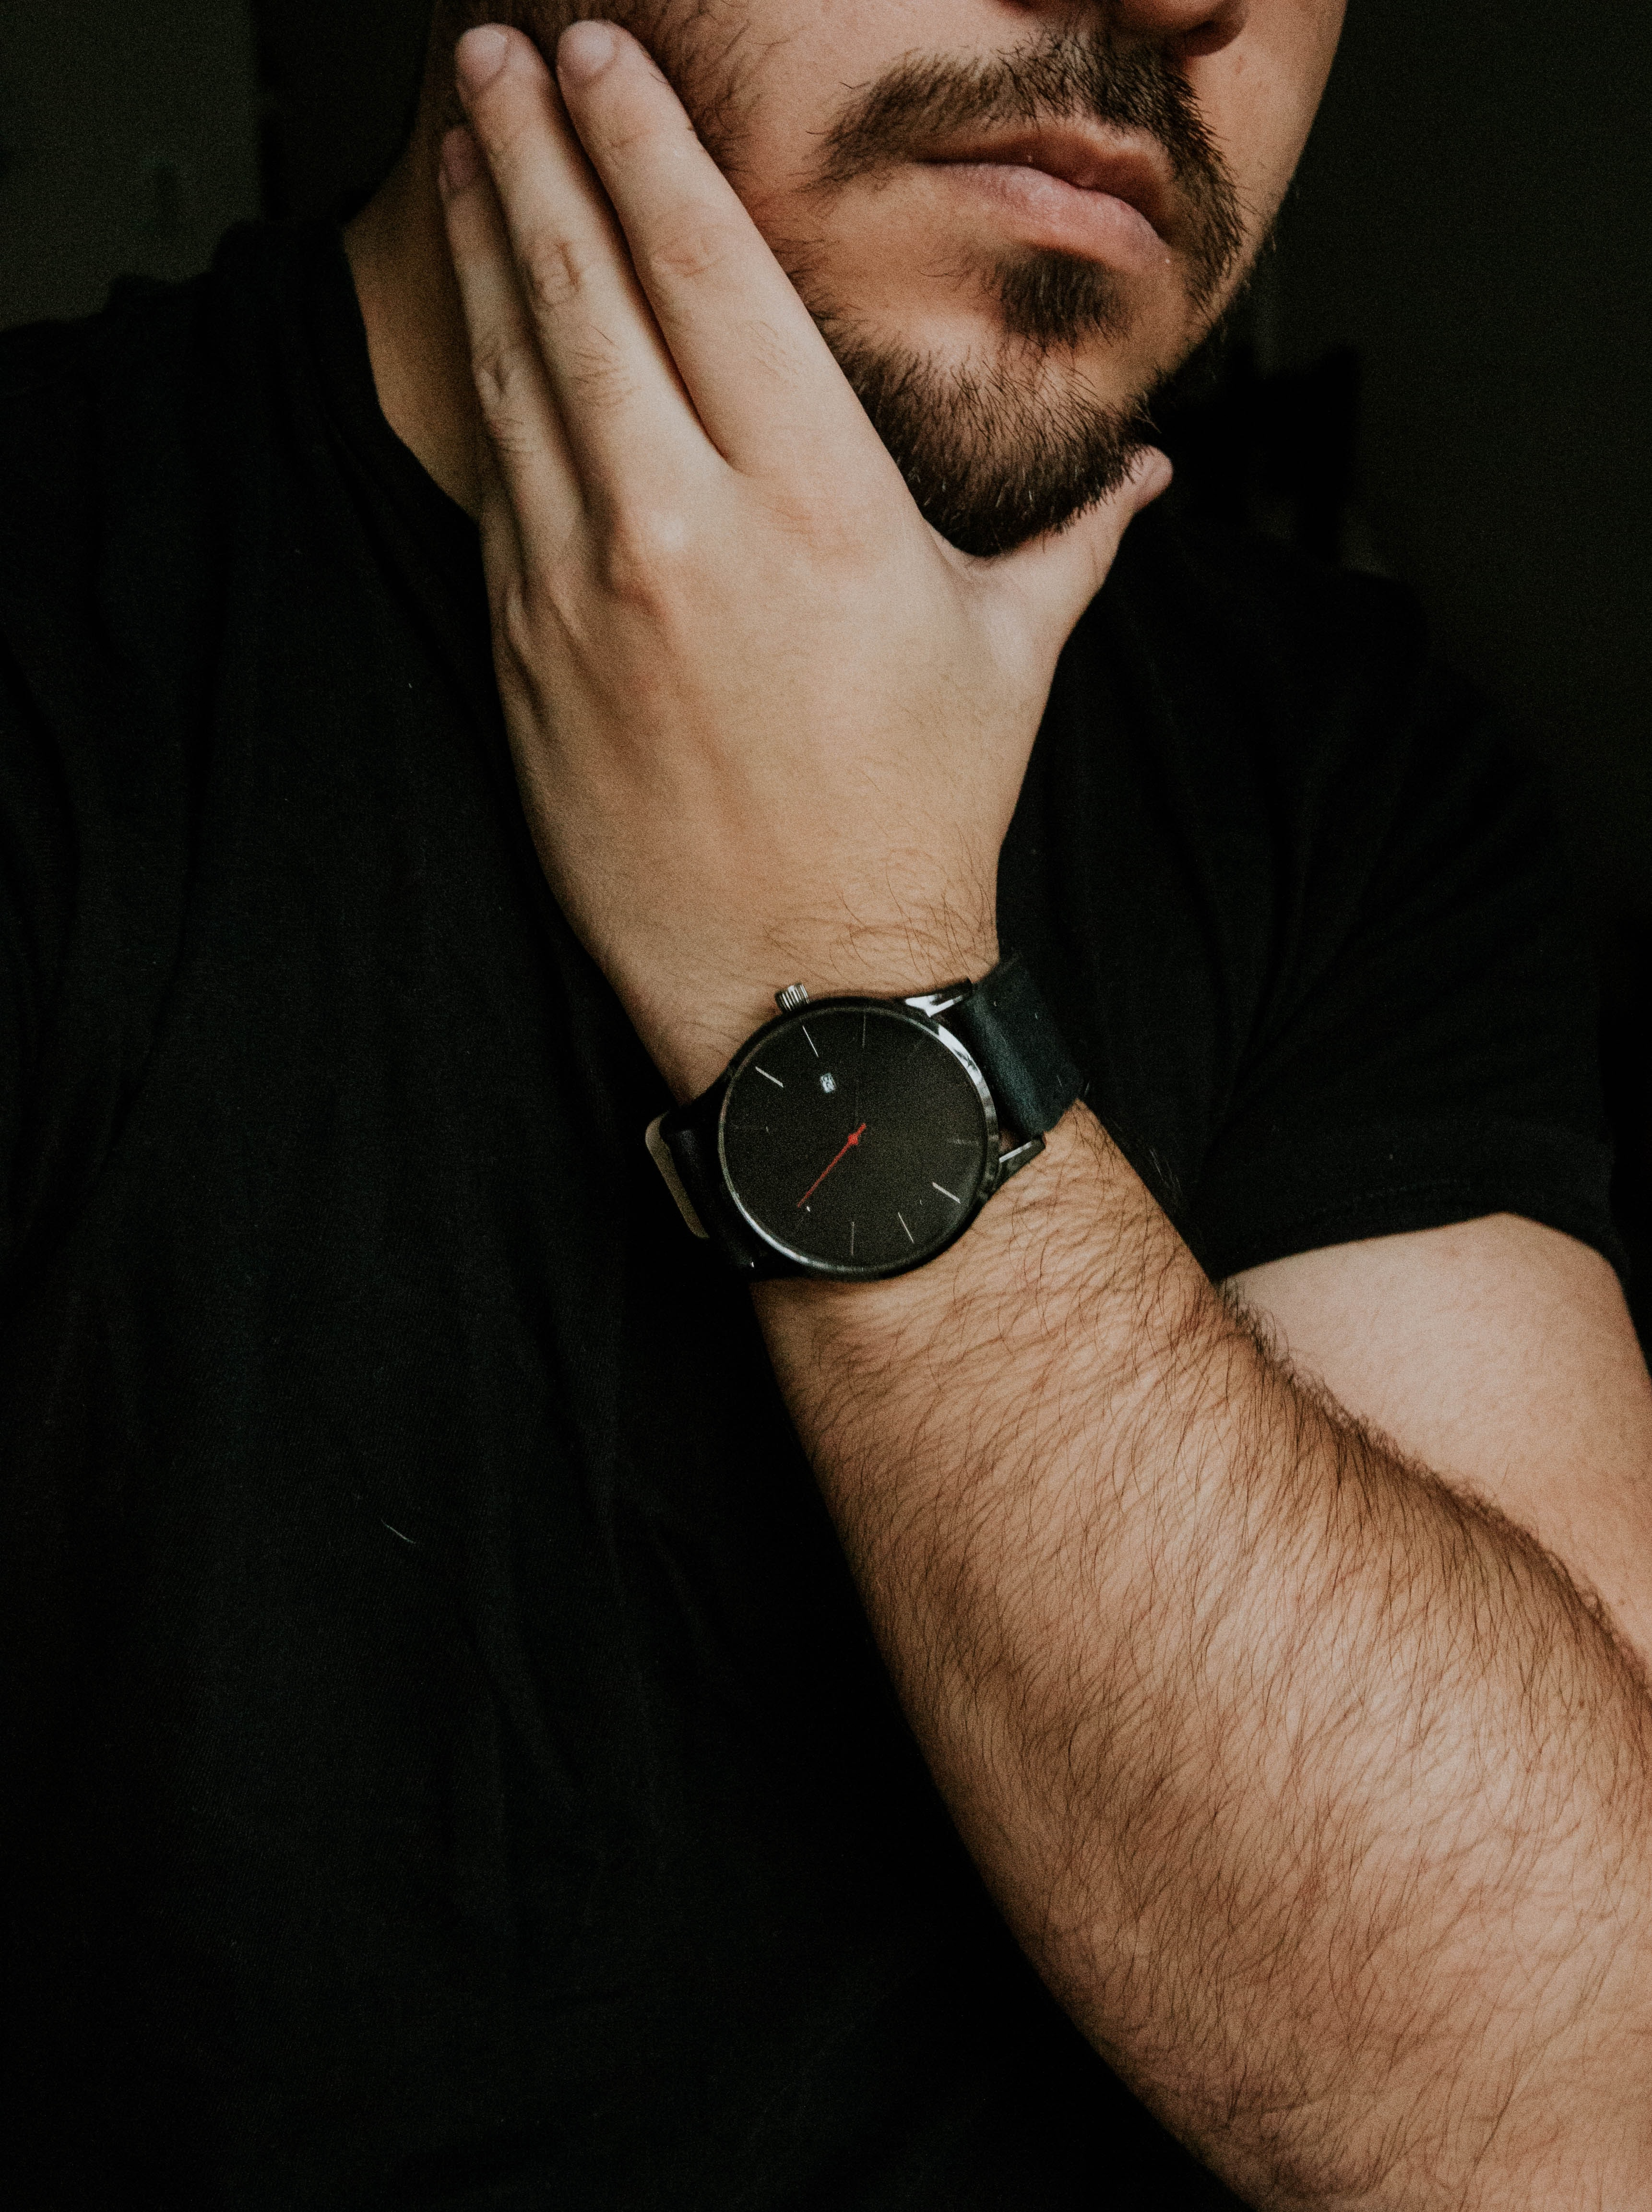 man wearing silver-colored watch holding fave